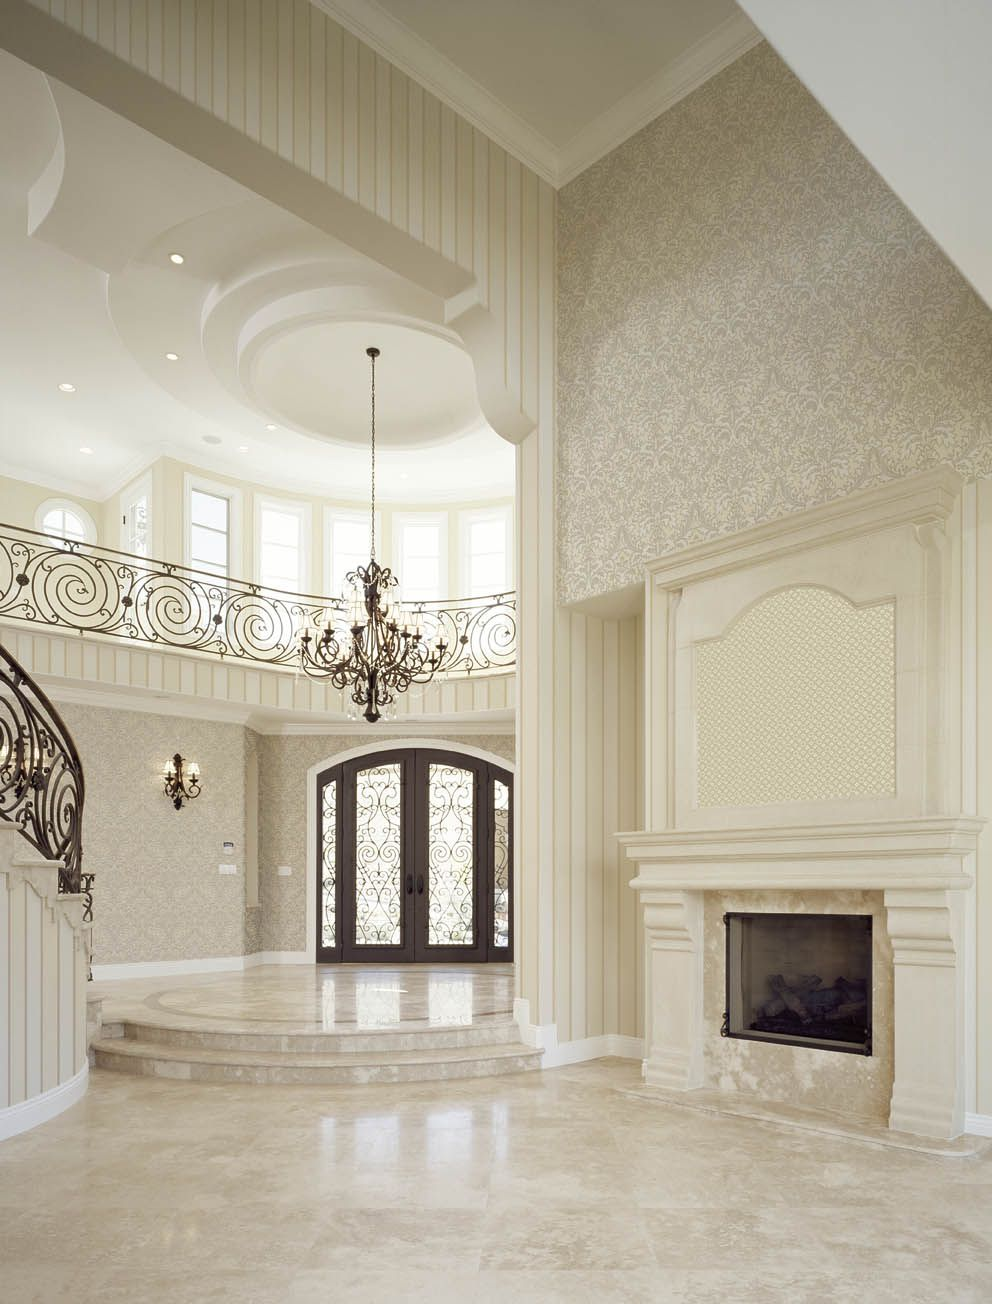 Venice inspiration. Palazzo ducale #wallcoverings collection. Non ...